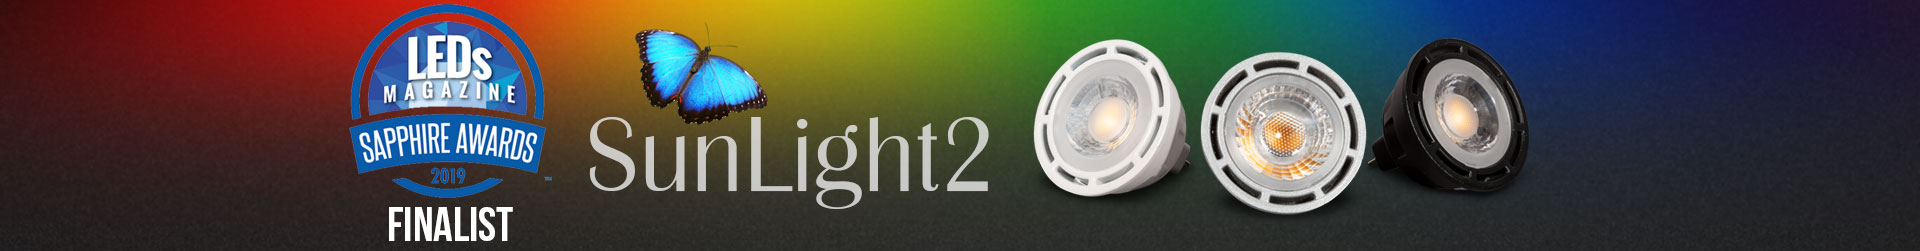 LTFs SunLight2 MR16 LED Bulb is True Color Optimized Dim-to-Warm and Title 24 Compliant